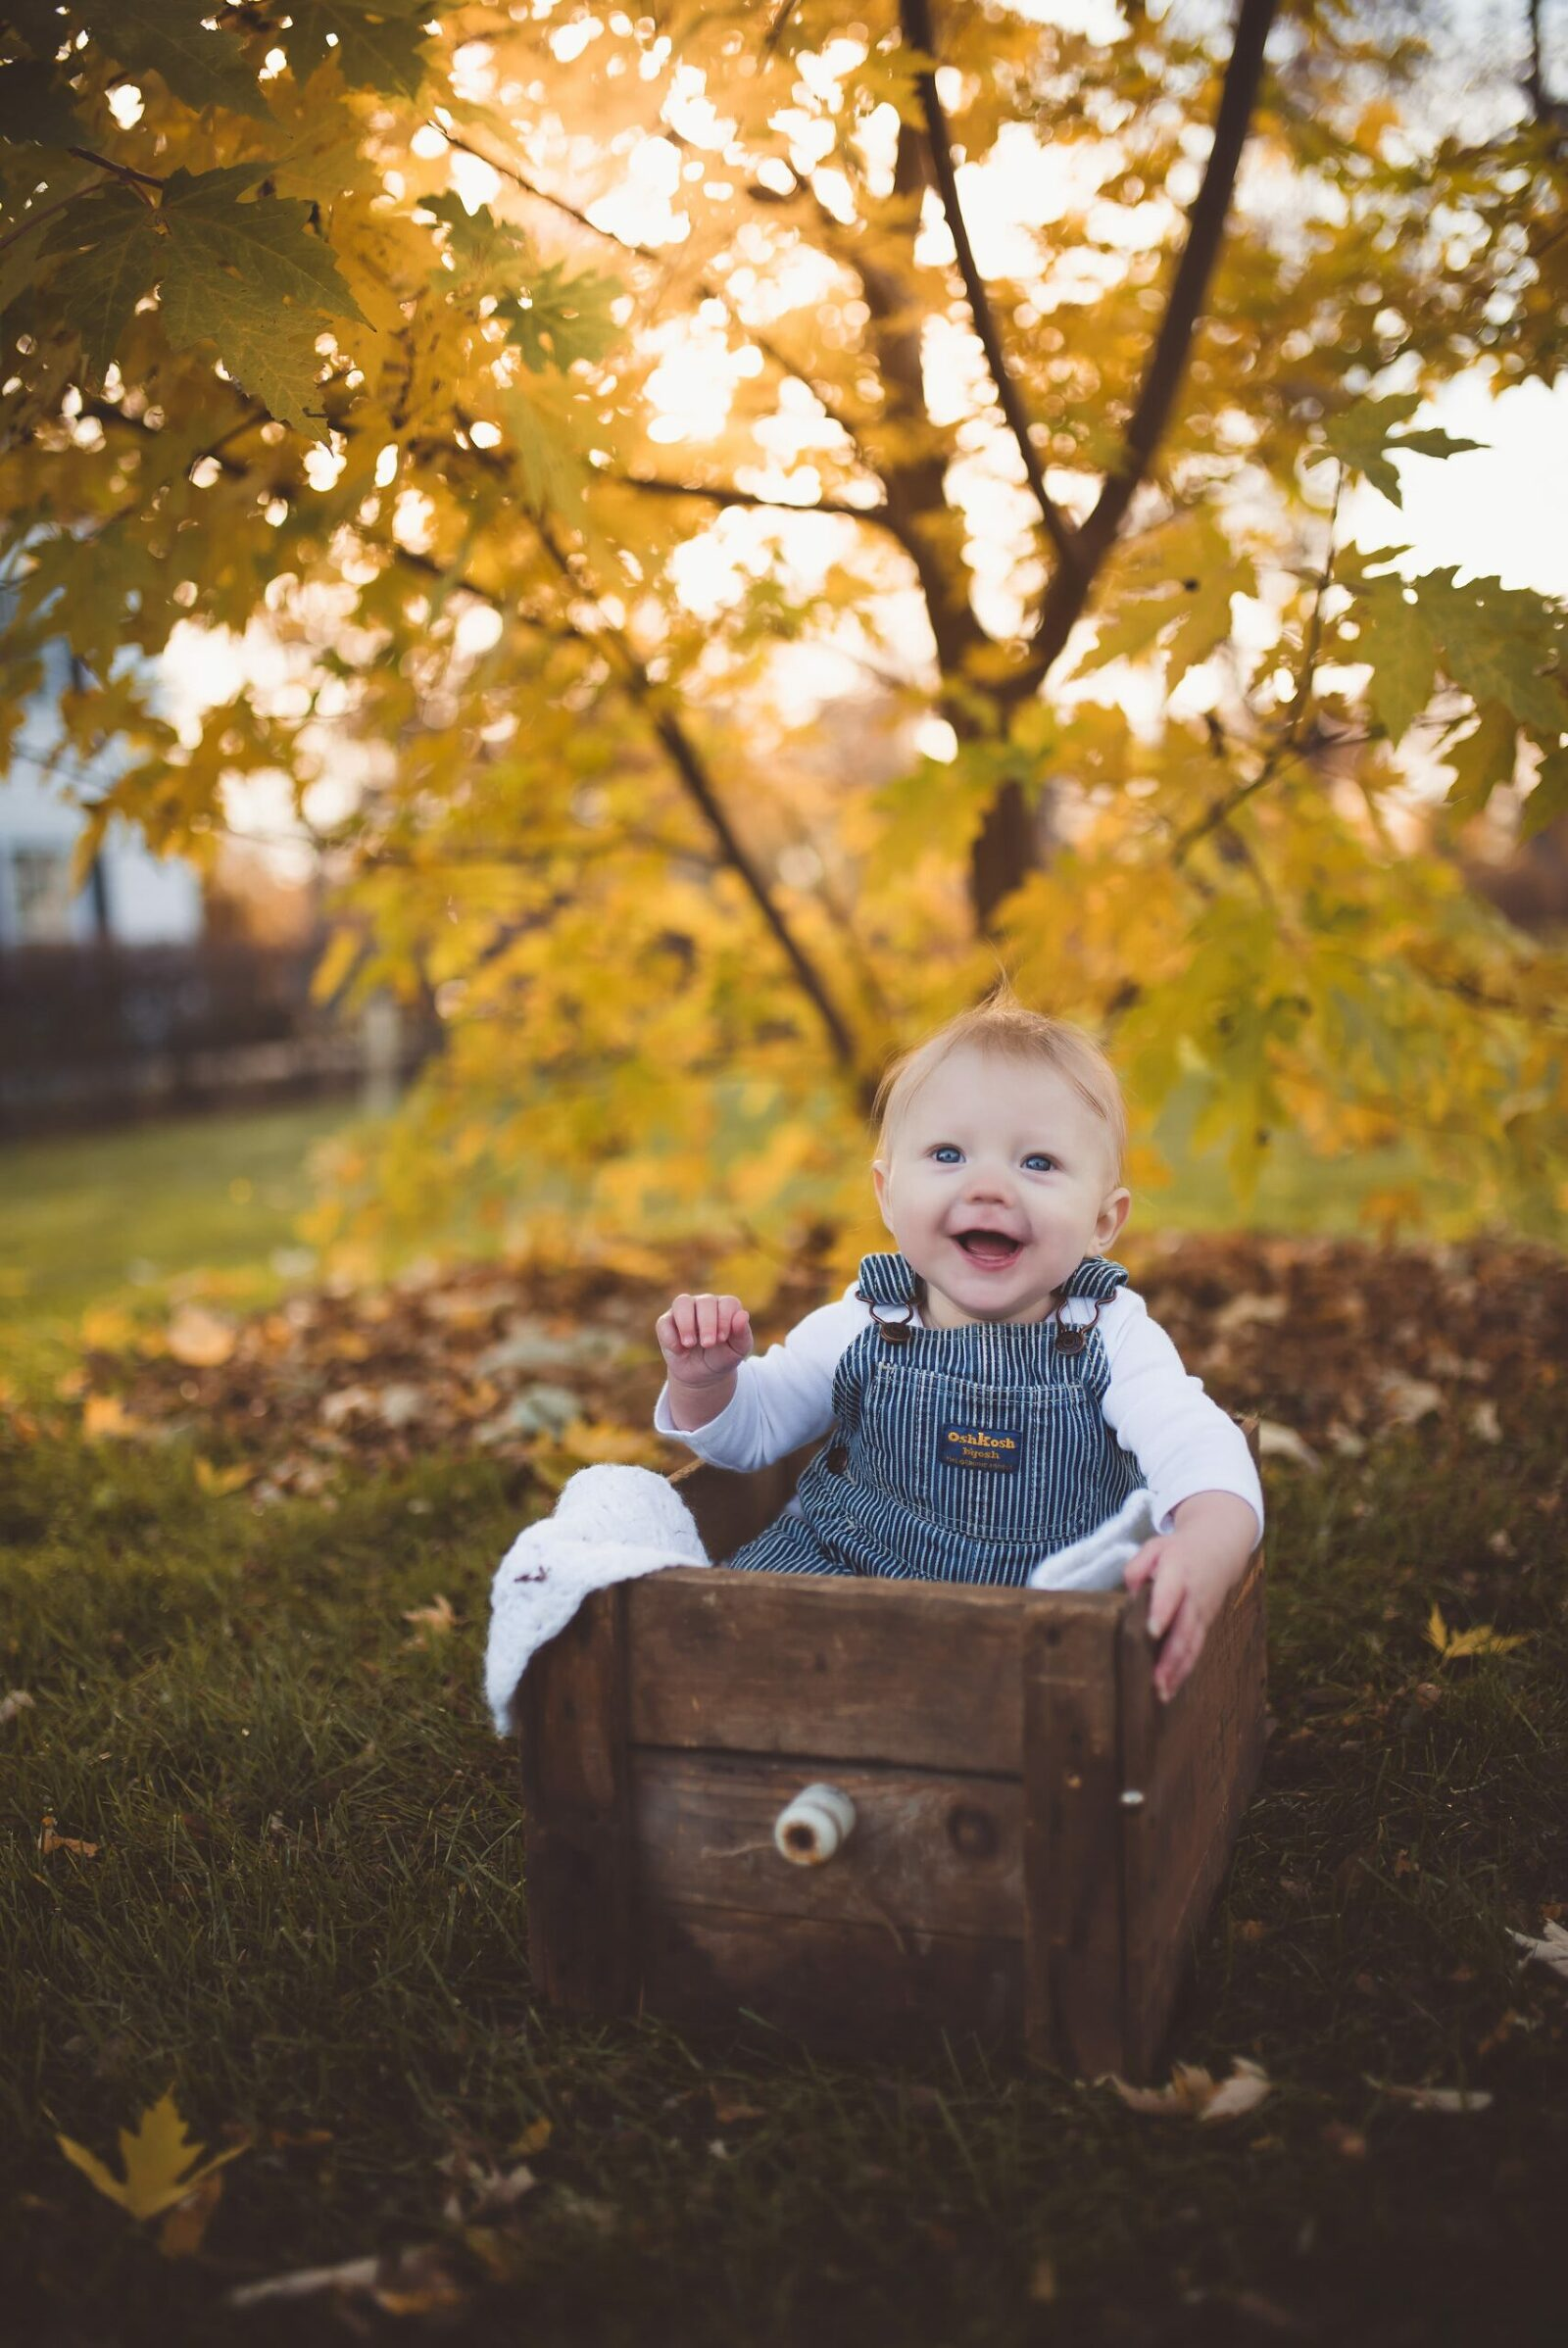 6 month old baby boy in vintage wooden box with autumn leaves in the background